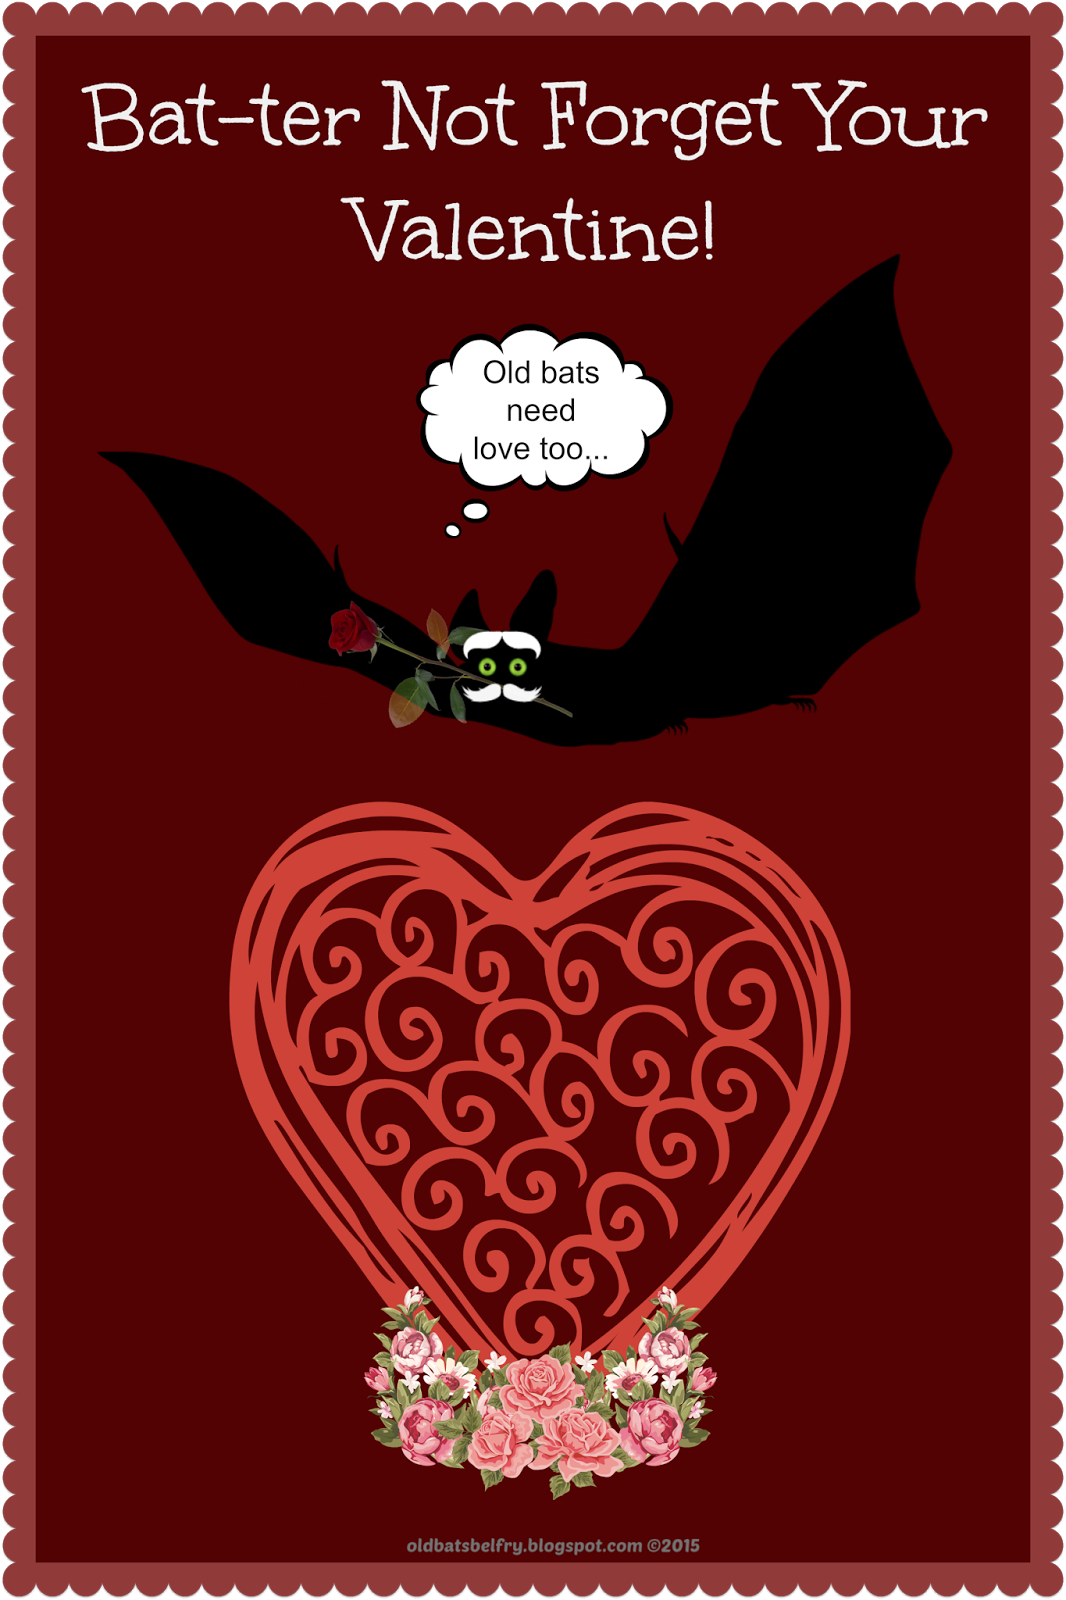 """Bat-ter Not Forget Your Valentine!"" Old Bats Need Love Too... Valentine Image by Mulluane"